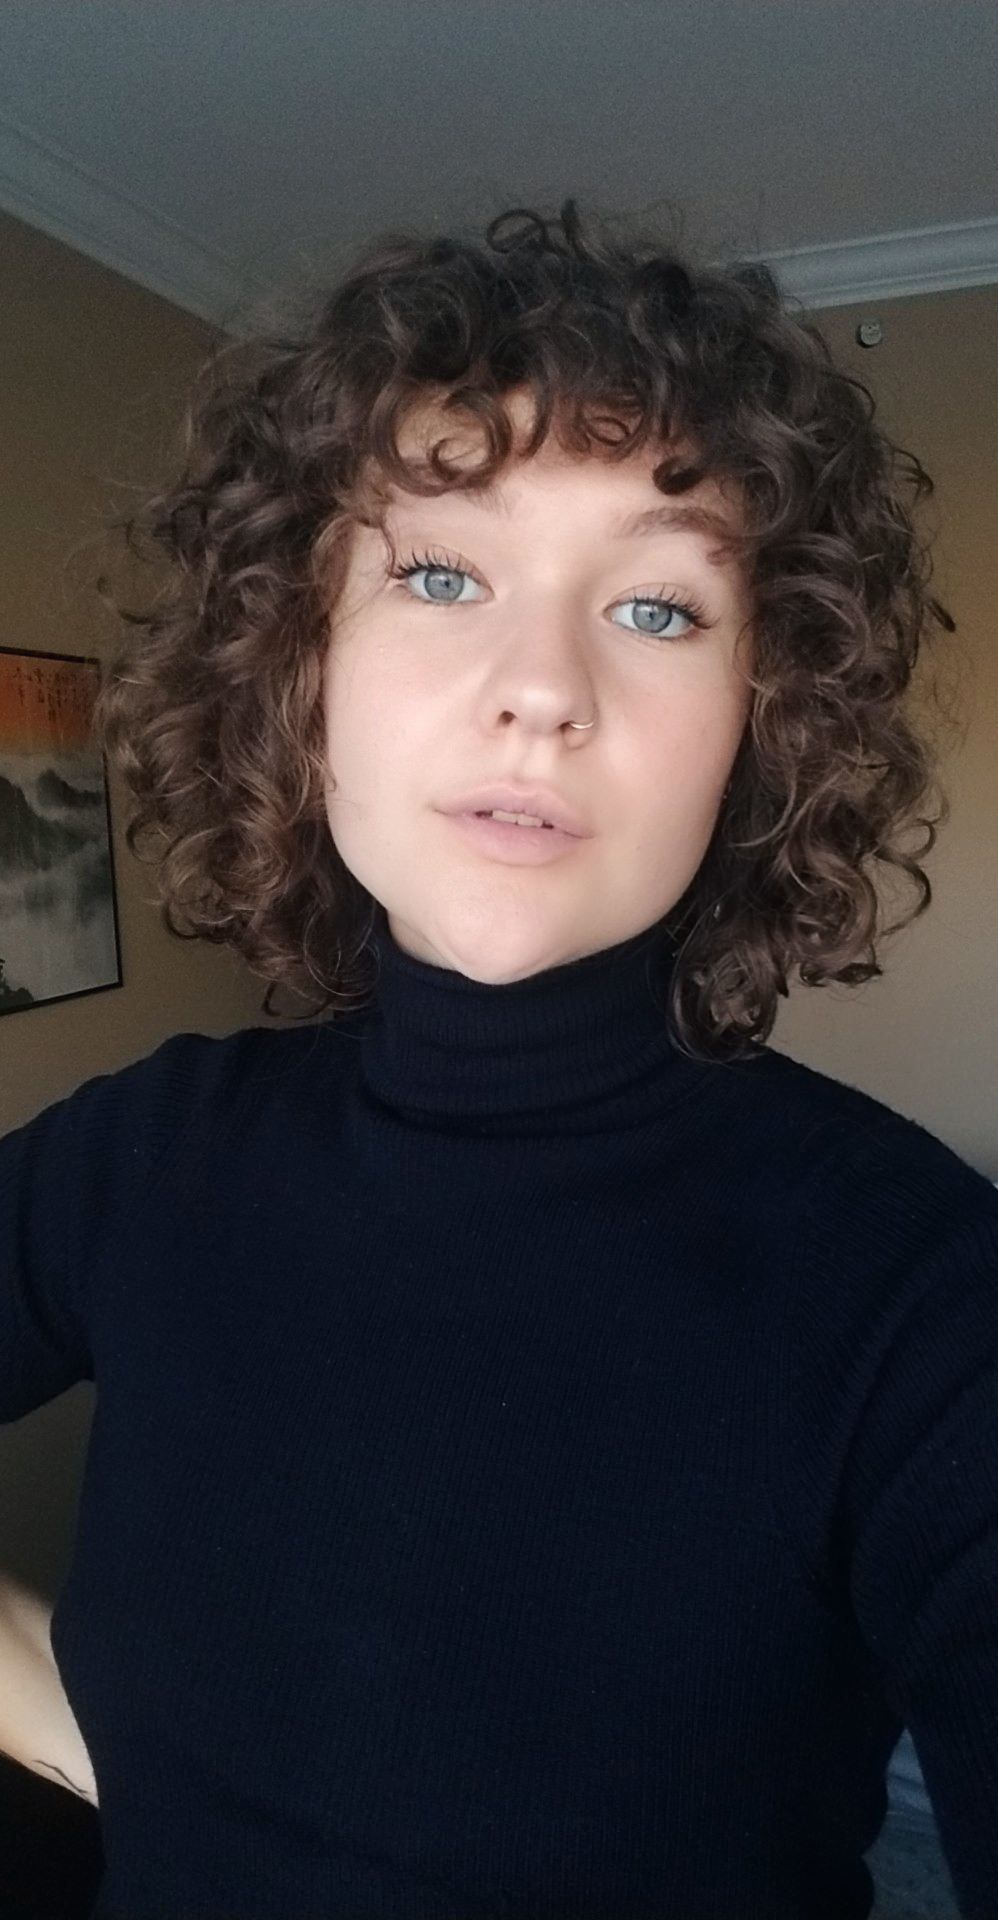 Curly fringe rarely ever cooperate, but today they